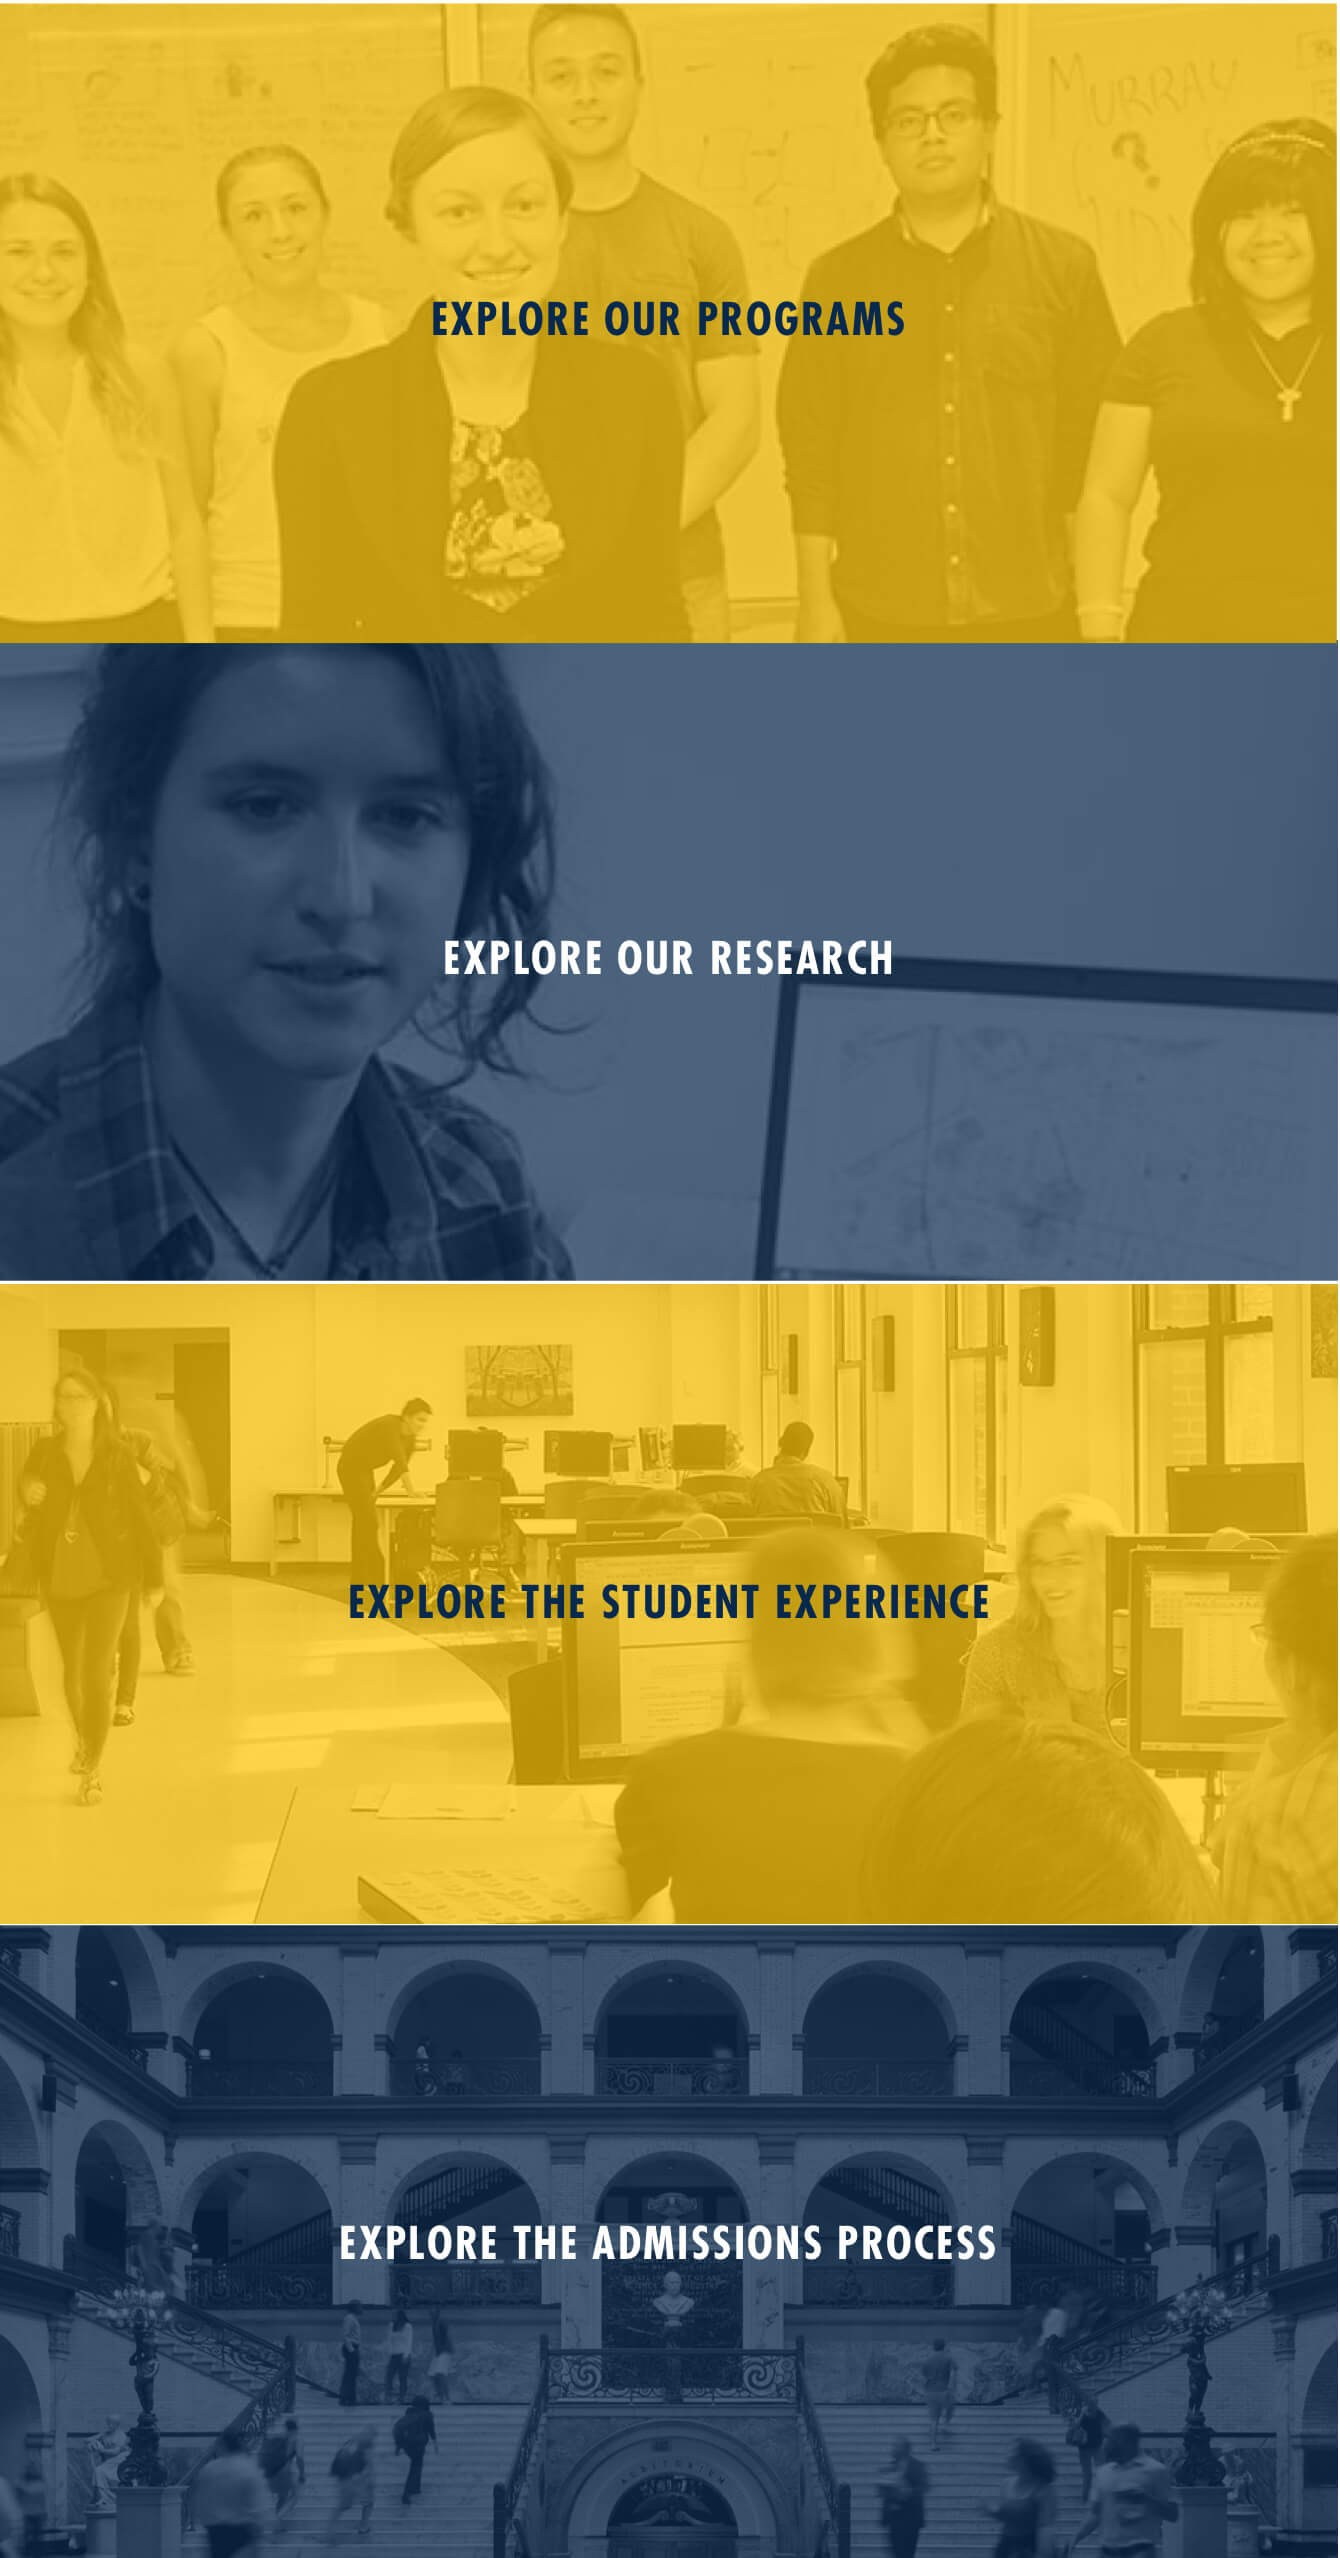 color overlays over Explore Our Programs, Explore Our Research, Explore the Student Experience, and Explore the Admissions Process